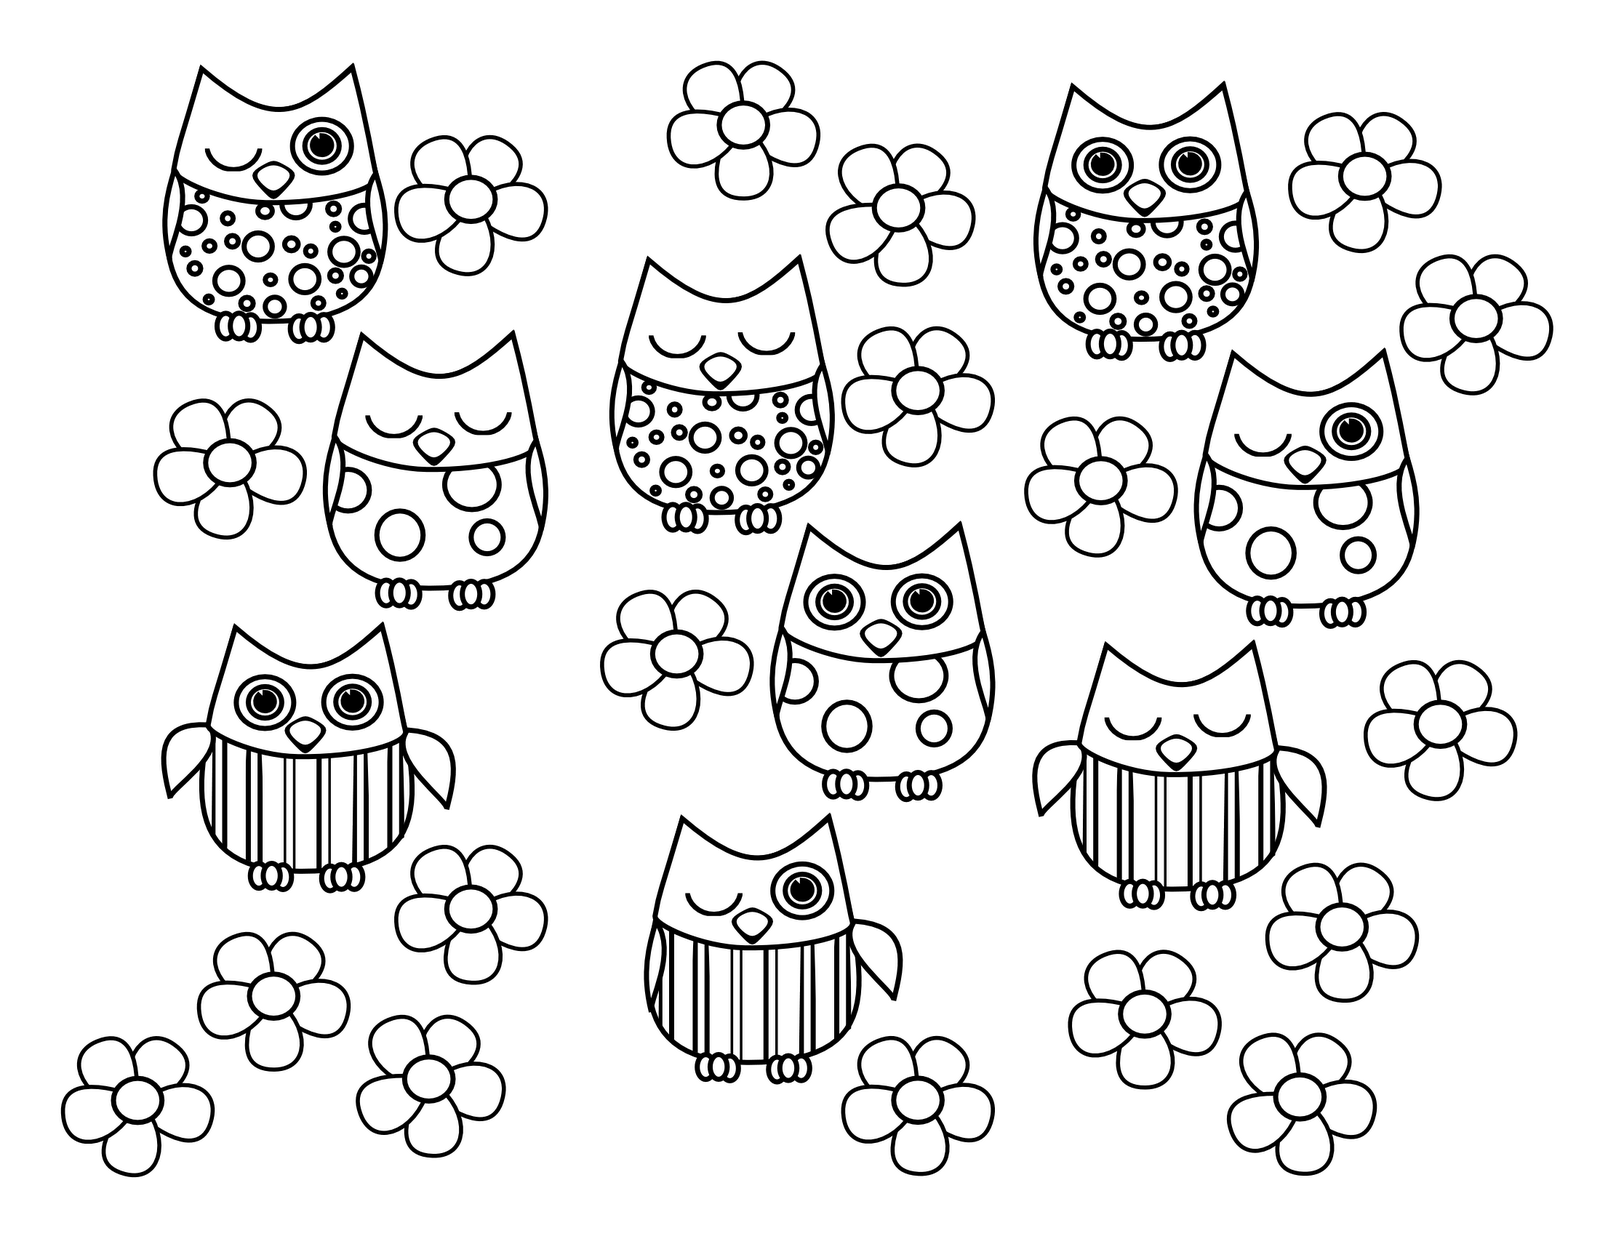 necklace coloring page - owl cute sweetheart owl coloring page kiddos origami owl